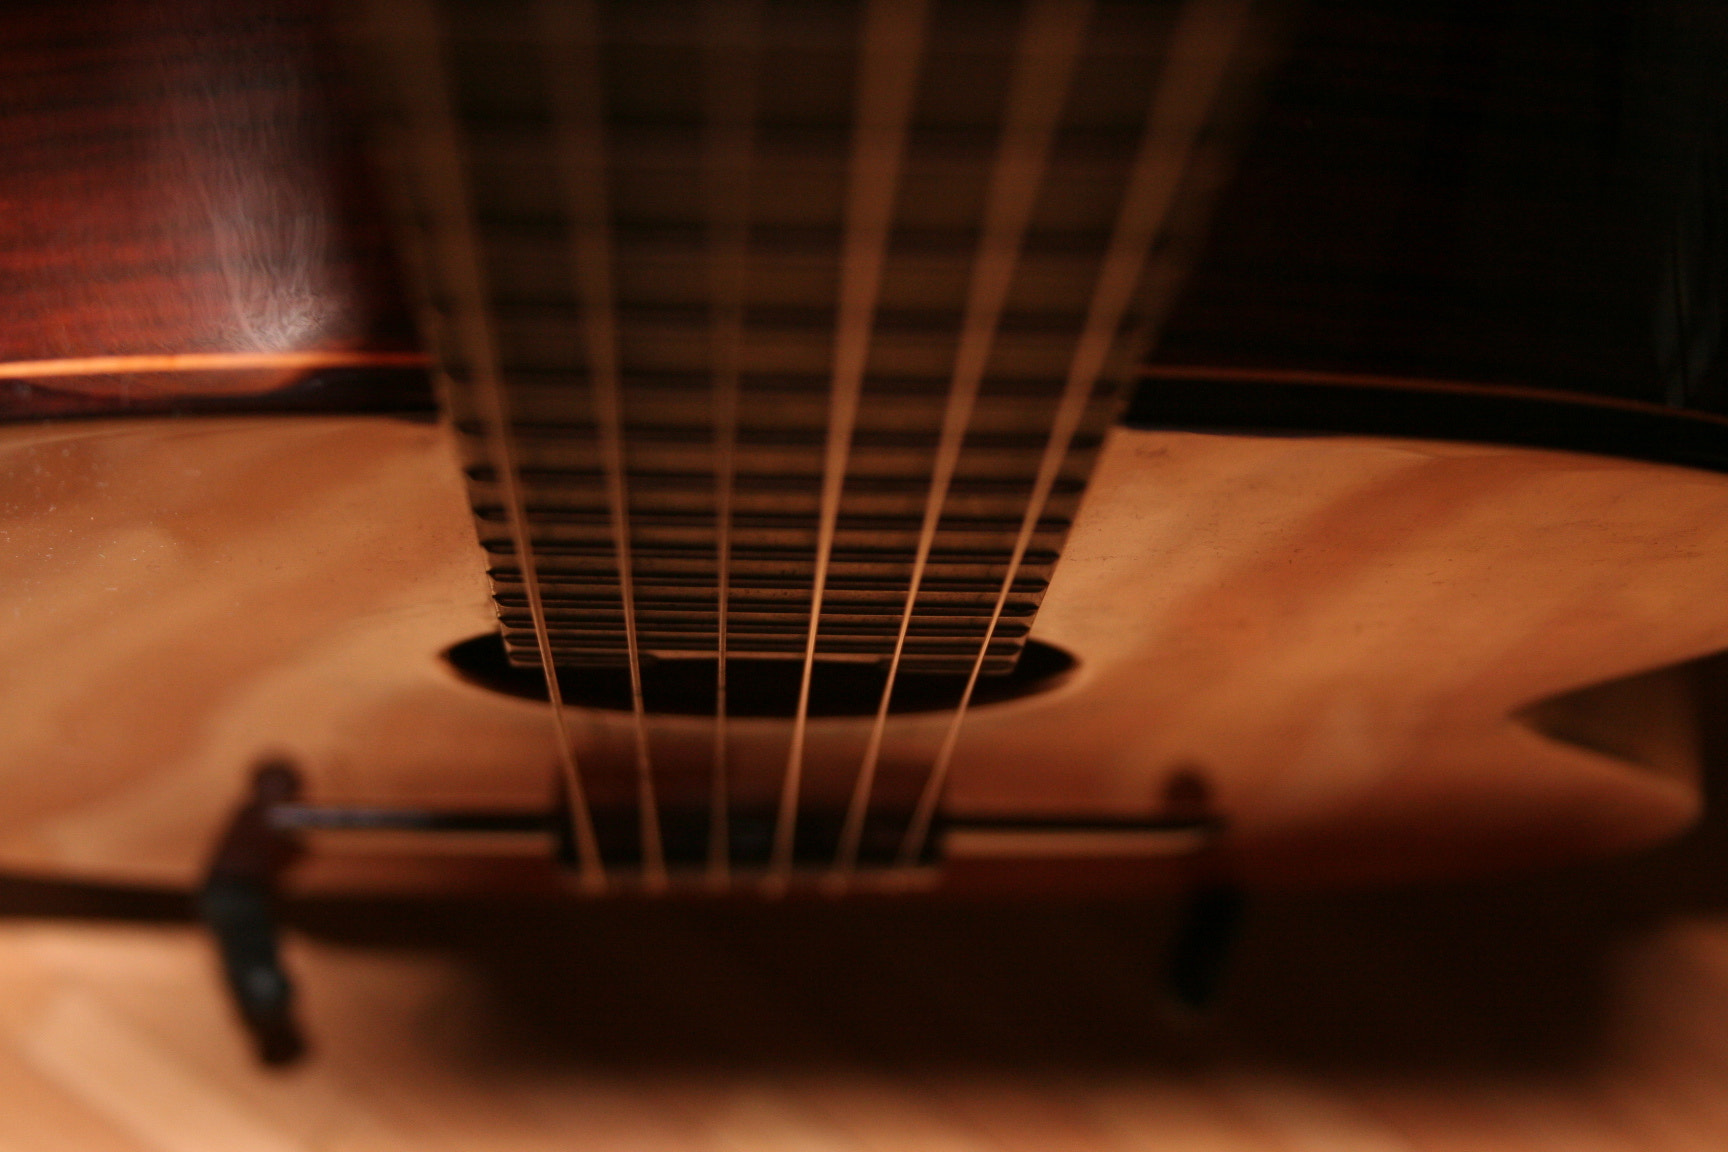 Photograph Guitar by paulbieberstein on 500px